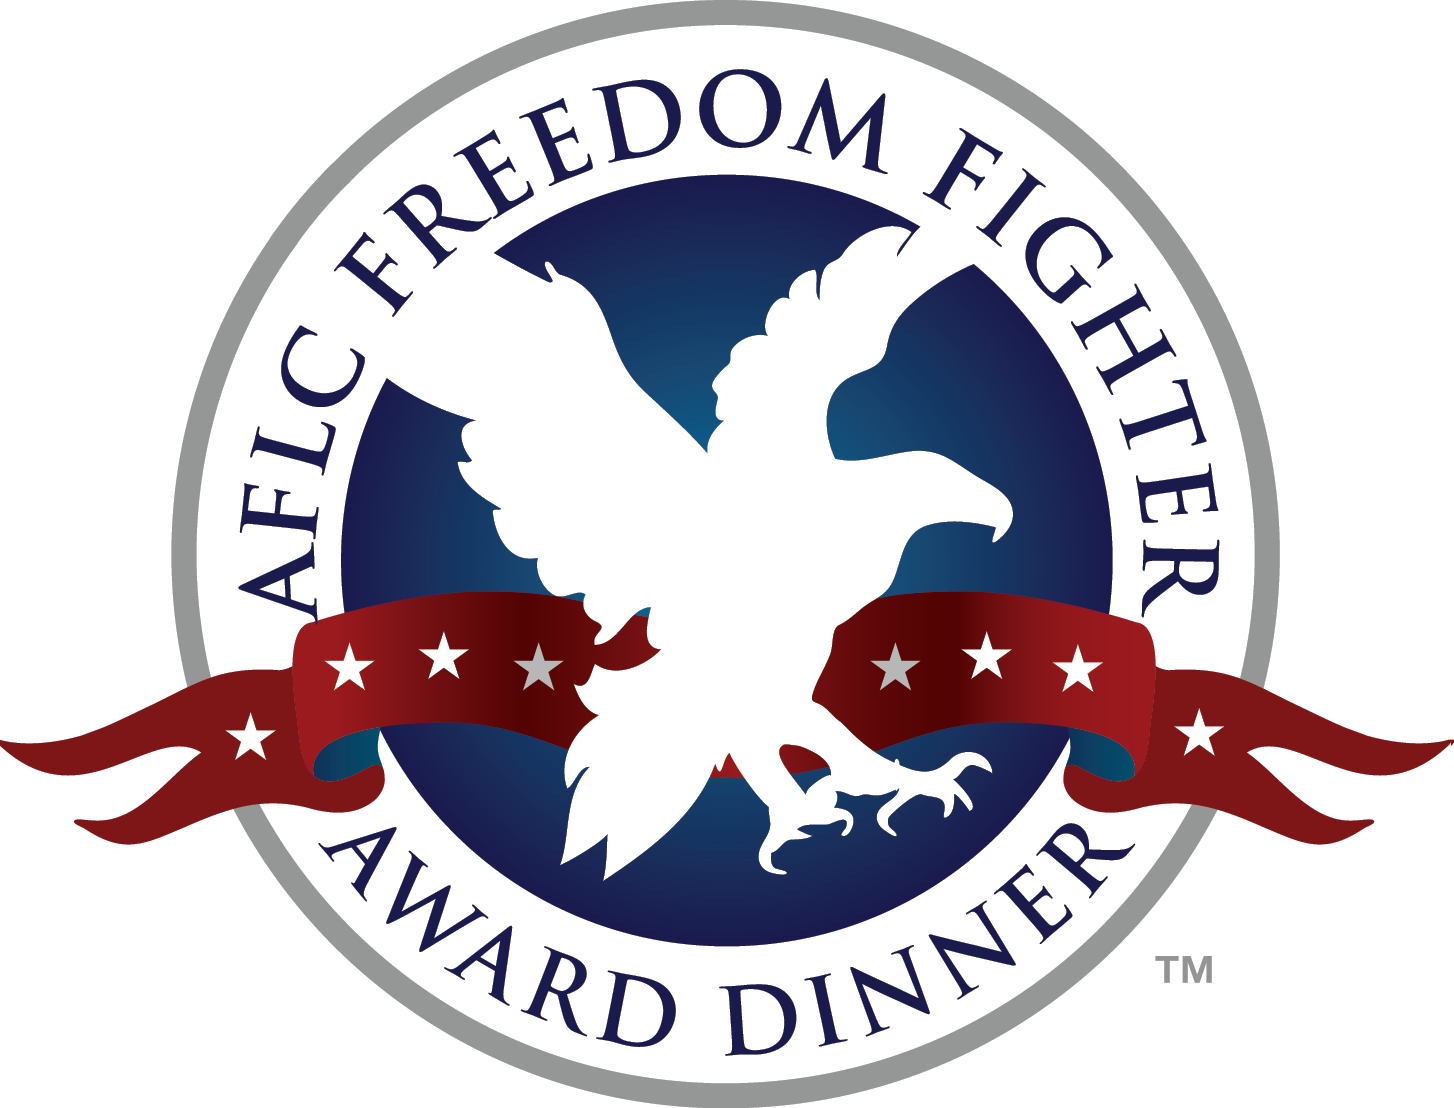 Freedom Fighter Award Dinner